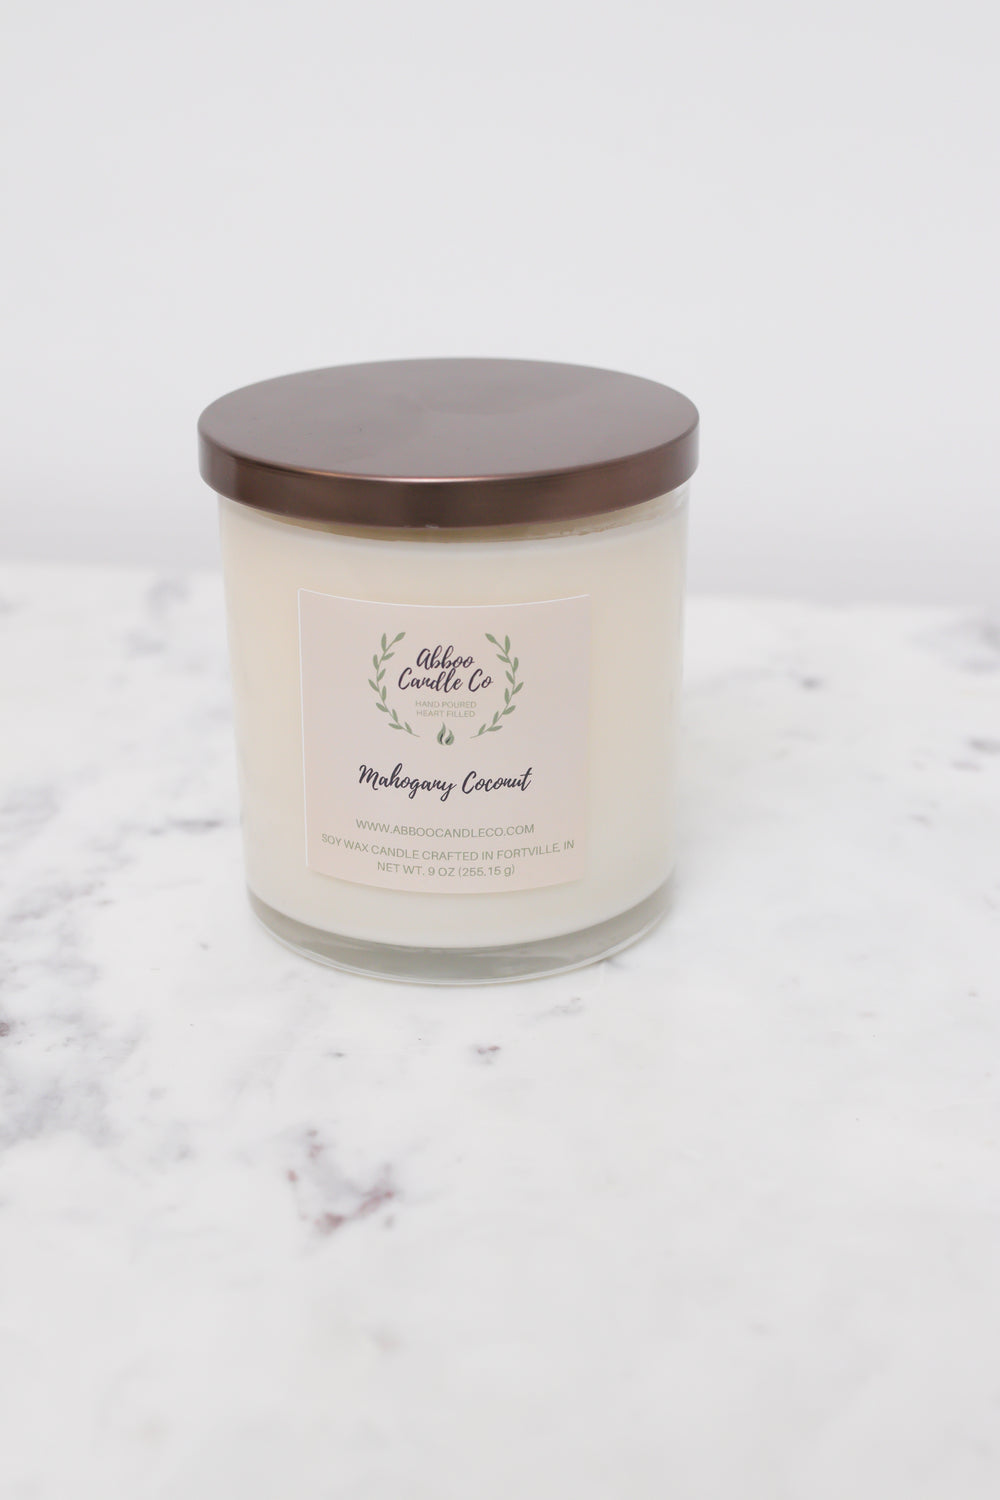 Soy Wax Candle 9oz Tumbler